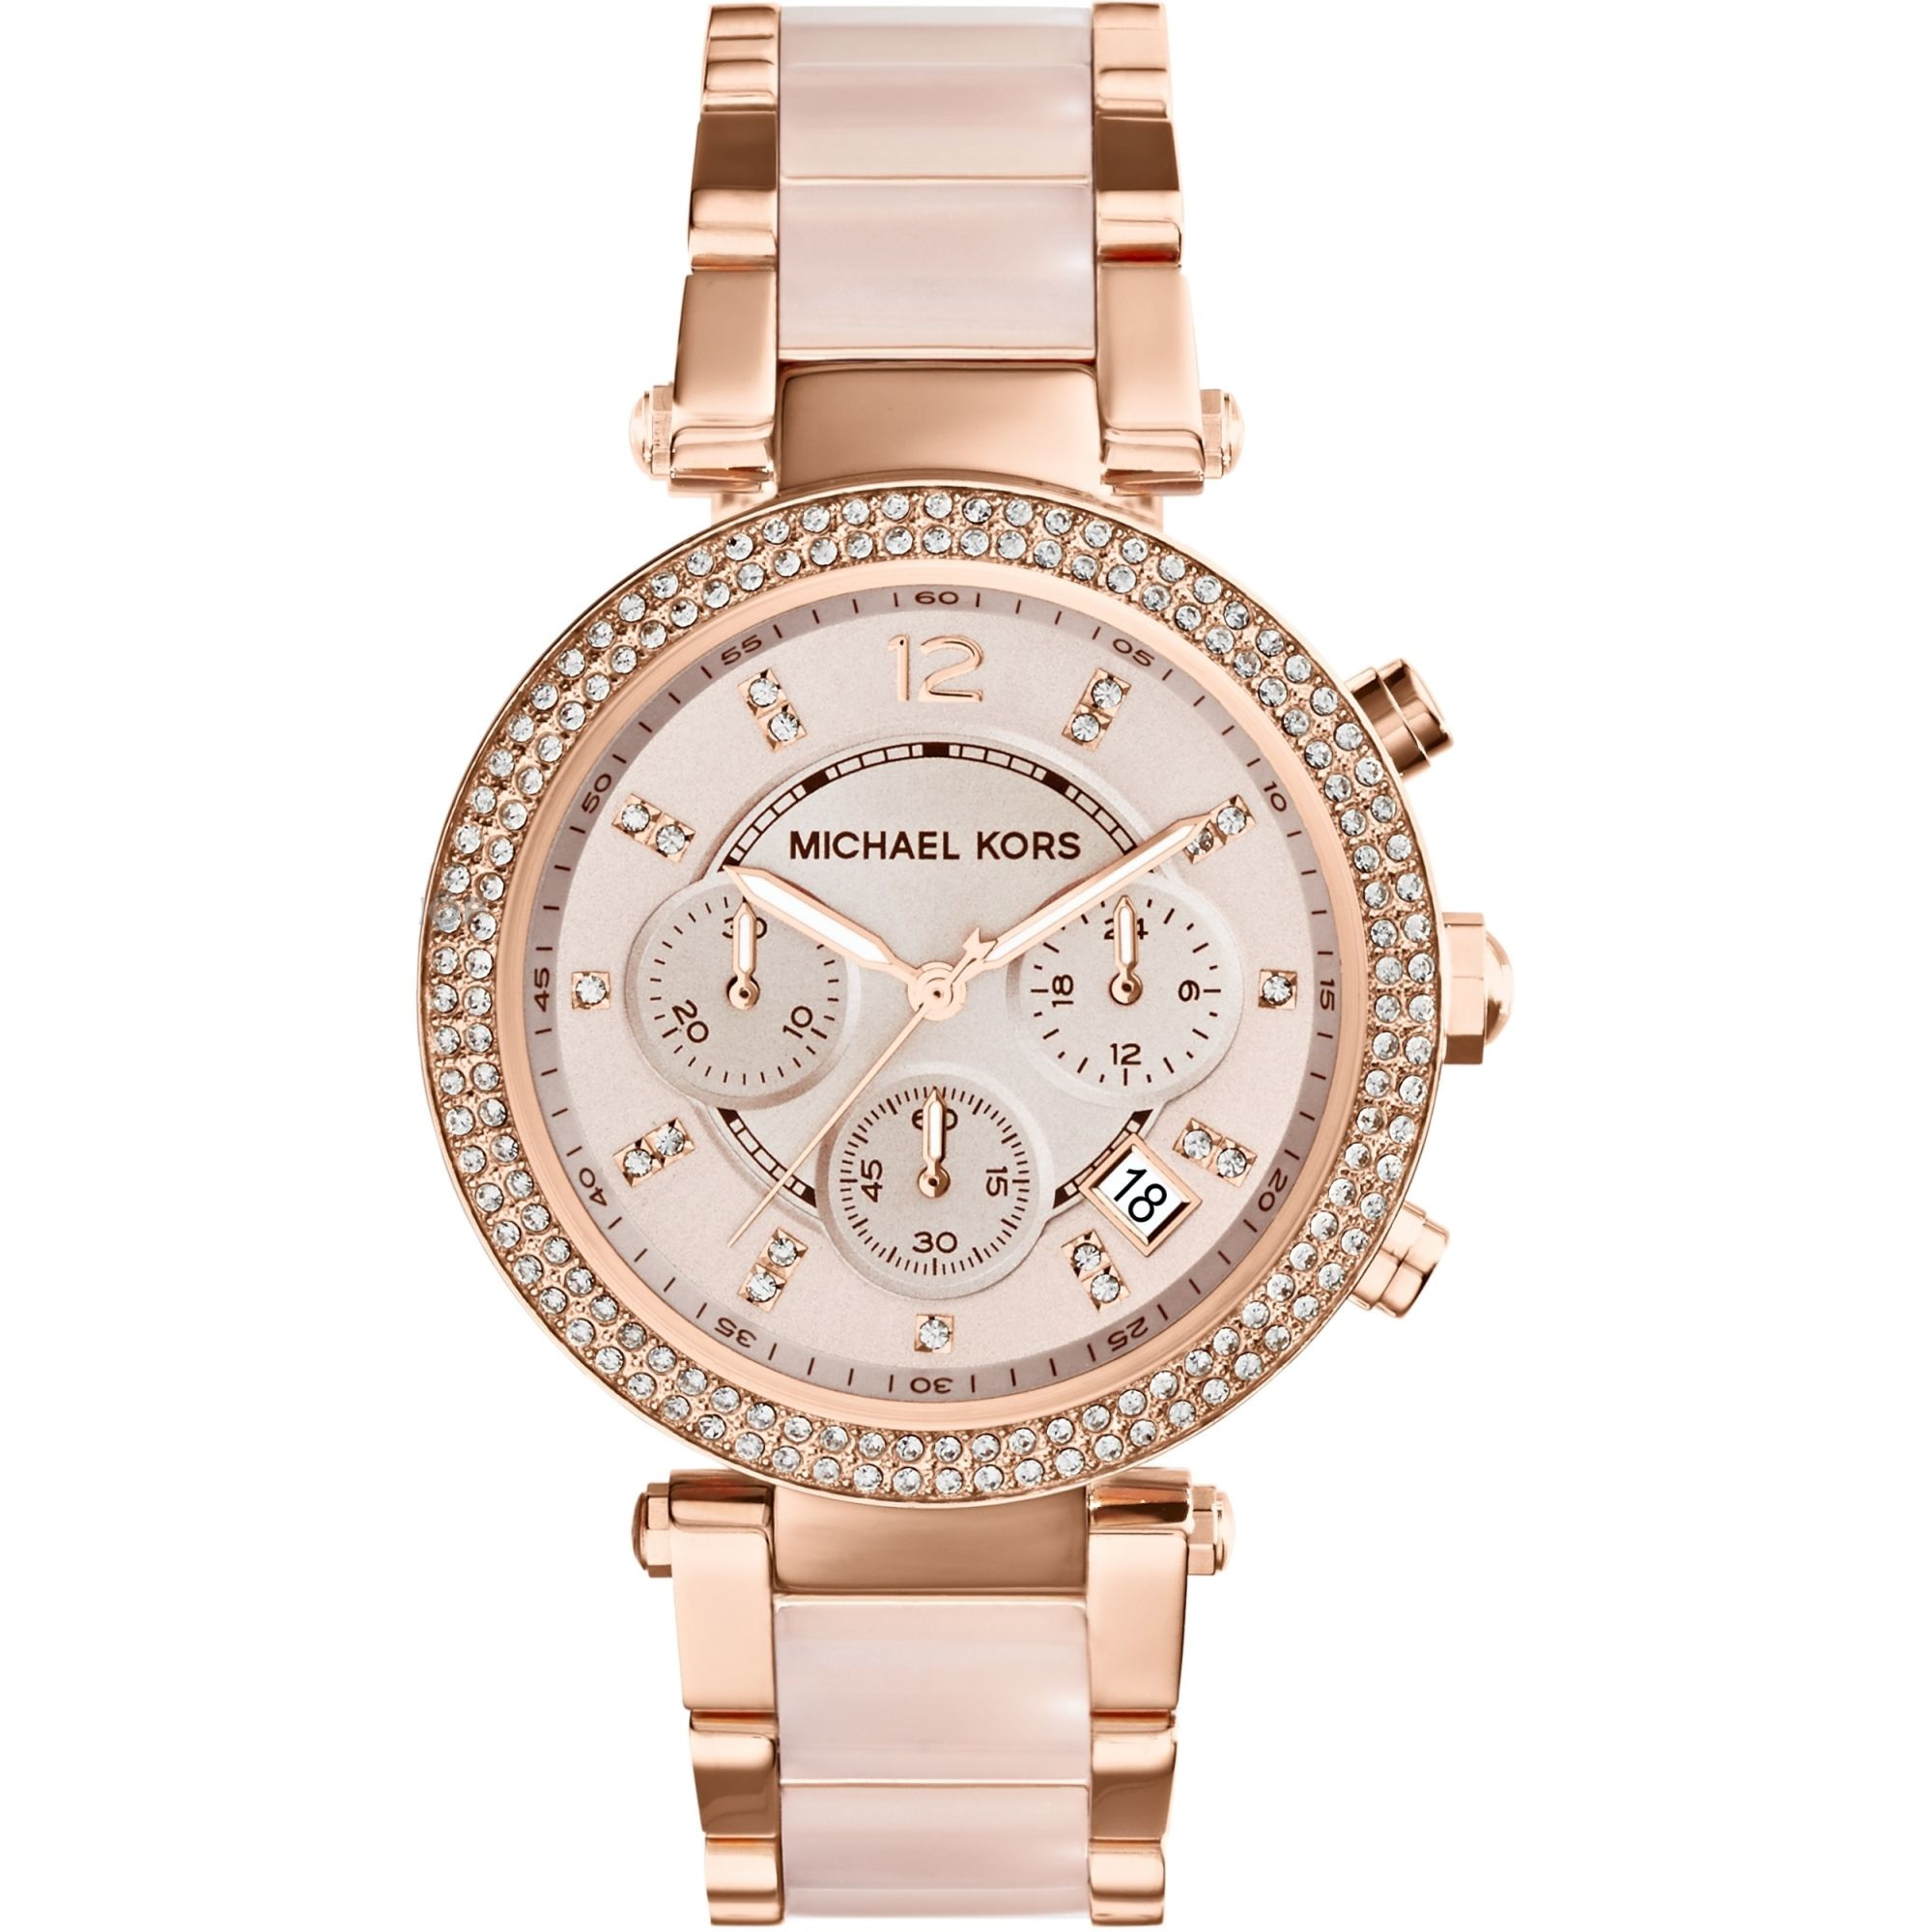 Michael Kors MK5896 Women's Chronograph Parker Watch